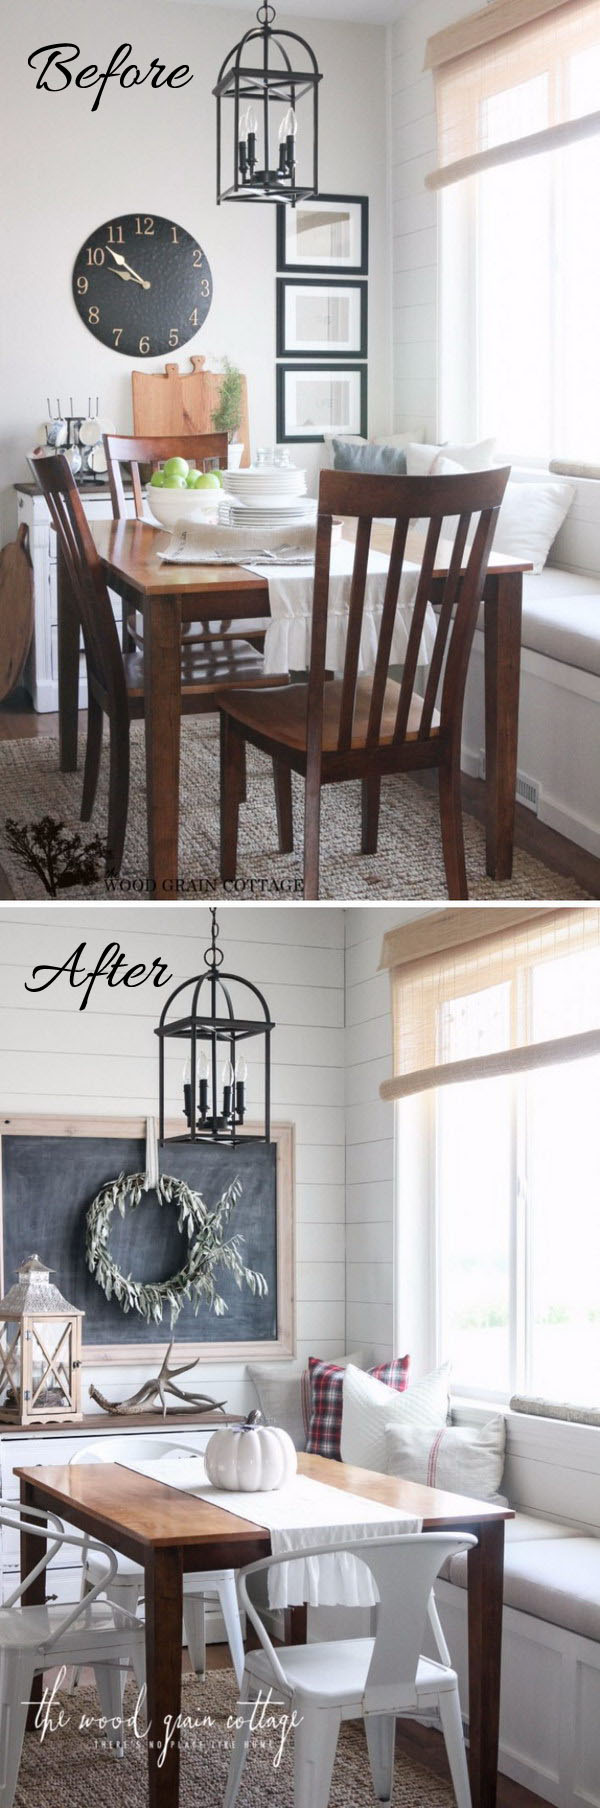 Breakfast Nook Makeover with Plank Wall and Blackboard.